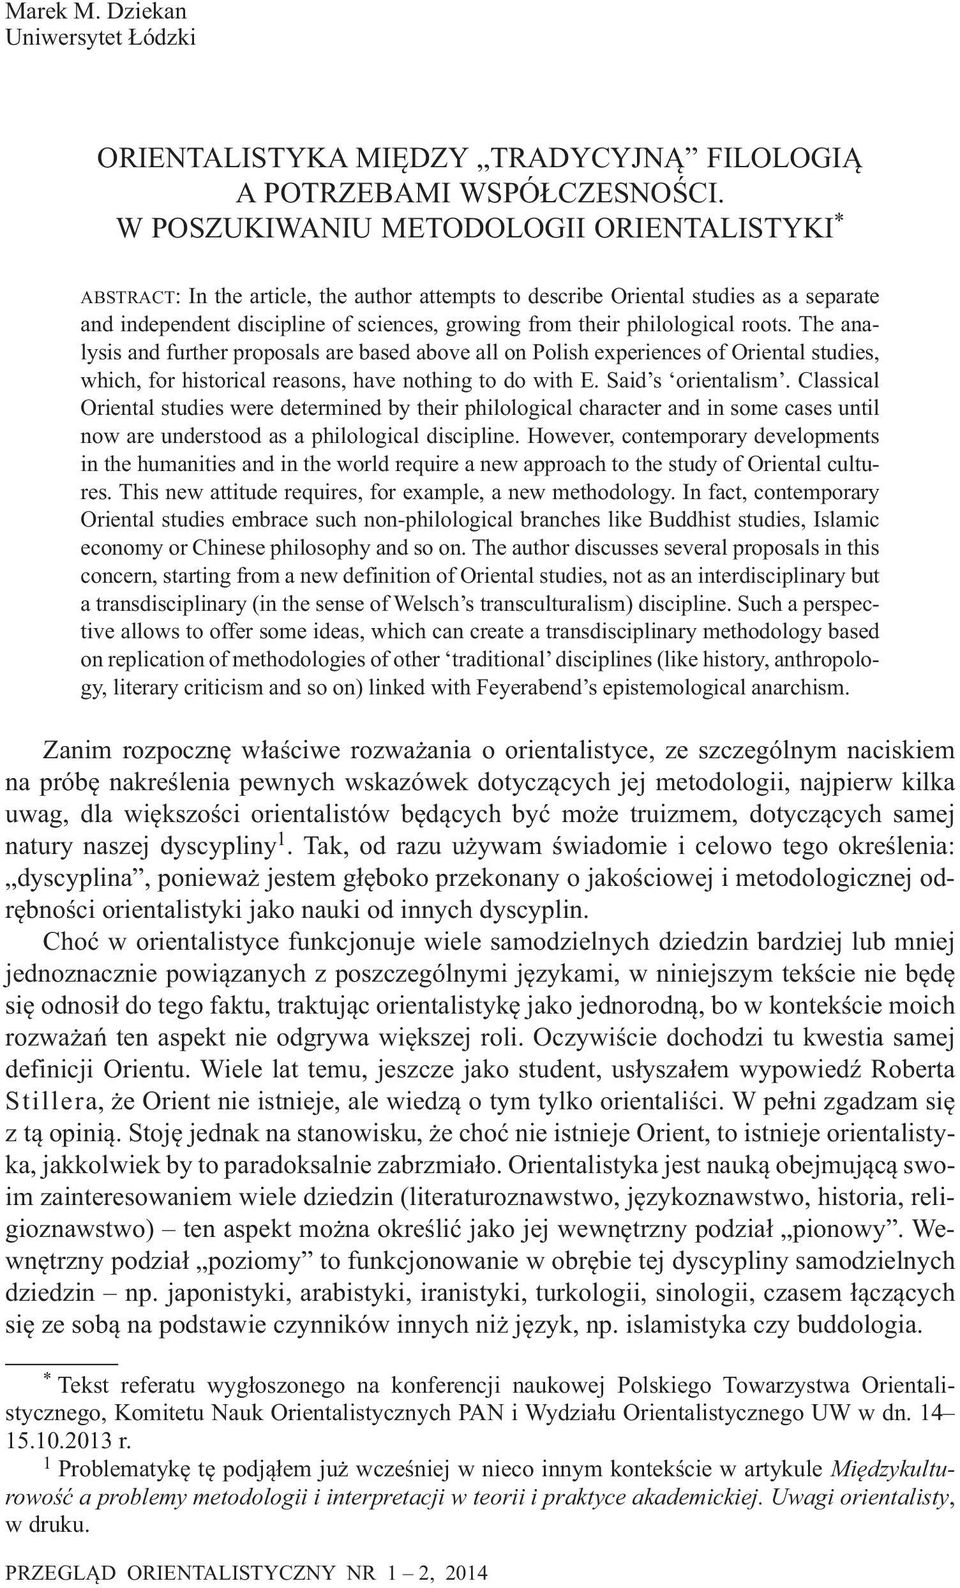 philological roots. The analysis and further proposals are based above all on Polish experiences of Oriental studies, which, for historical reasons, have nothing to do with E. Said s orientalism.